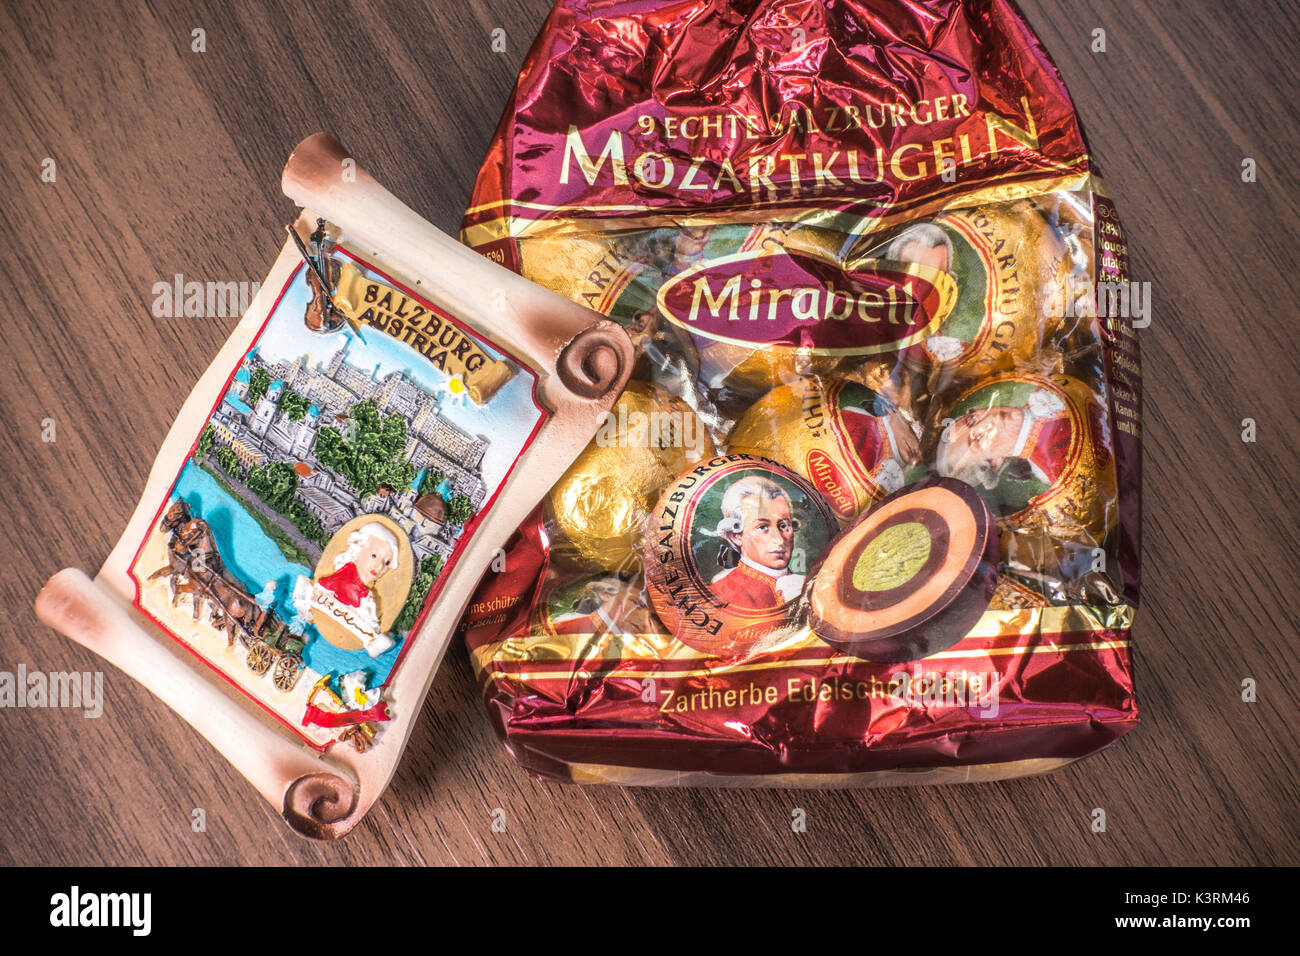 A Salzburg souvenir alongside a pack of Mirabell Mozartkugen Mozart chocolate balls - produced in the spirit of the original recipe in Salzburg. - Stock Image